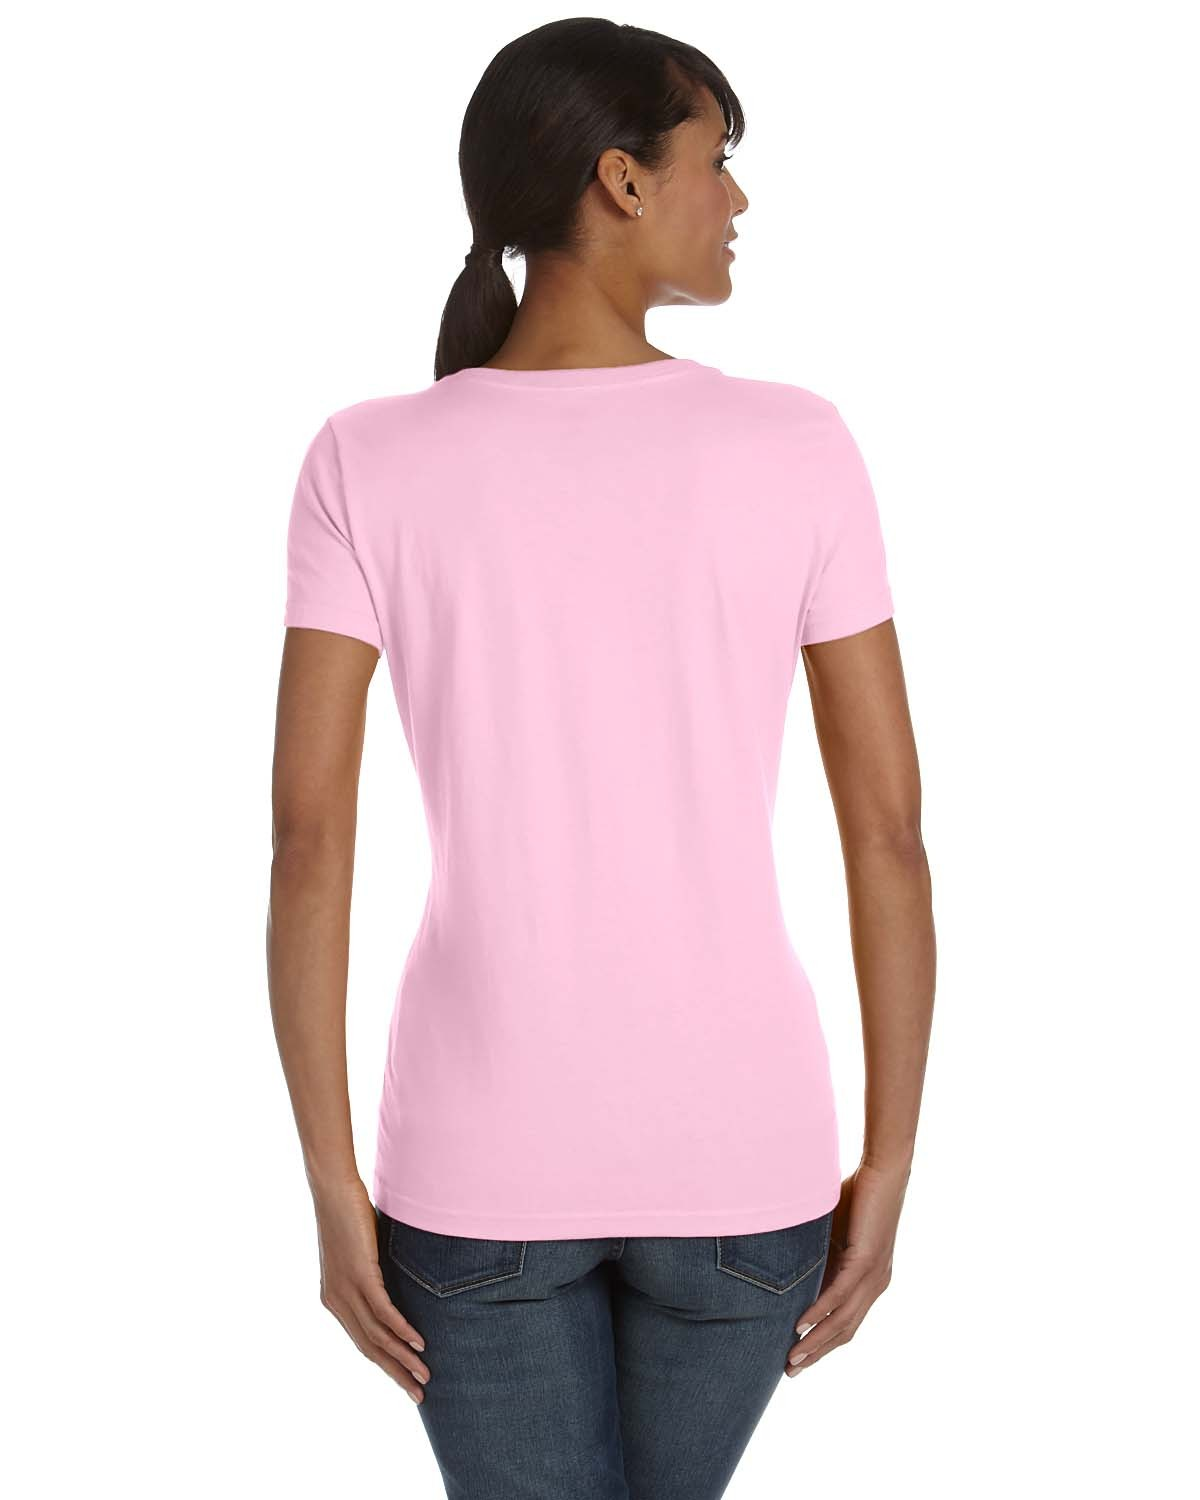 L39VR Fruit of the Loom CLASSIC PINK